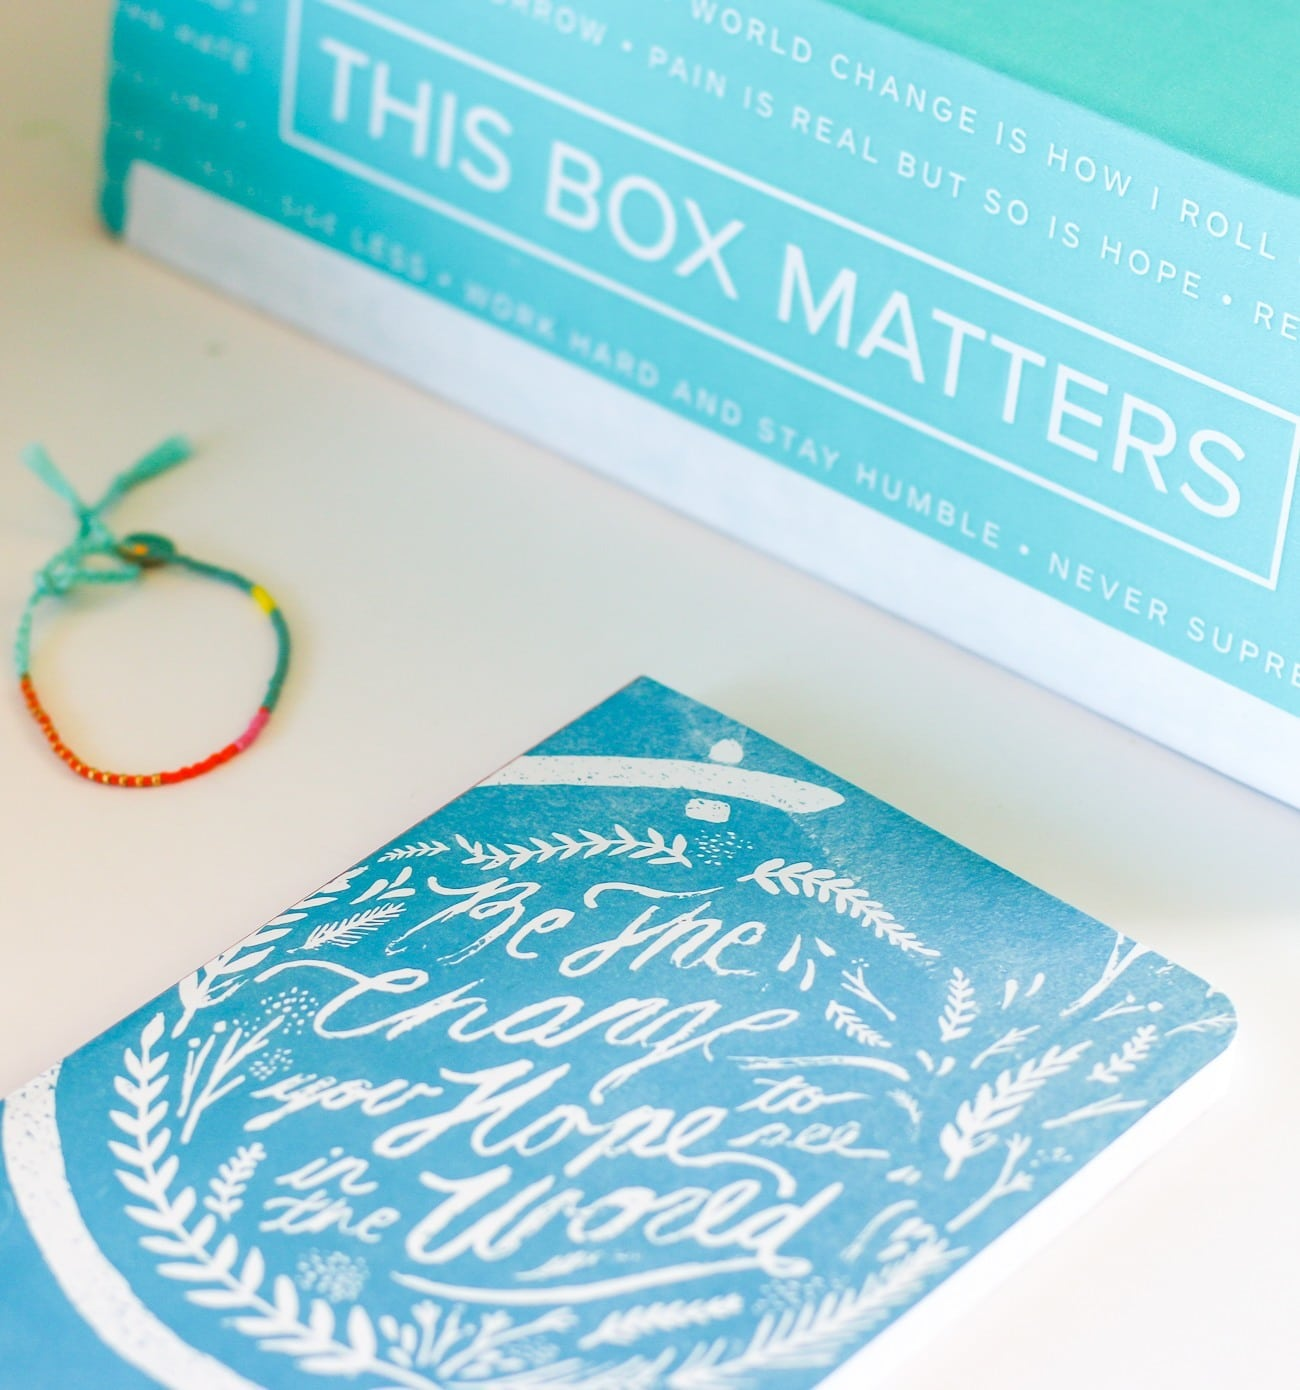 The Denik notebook and Tribe-Alive bracelet items in Sevenly's spring CAUSEBOX